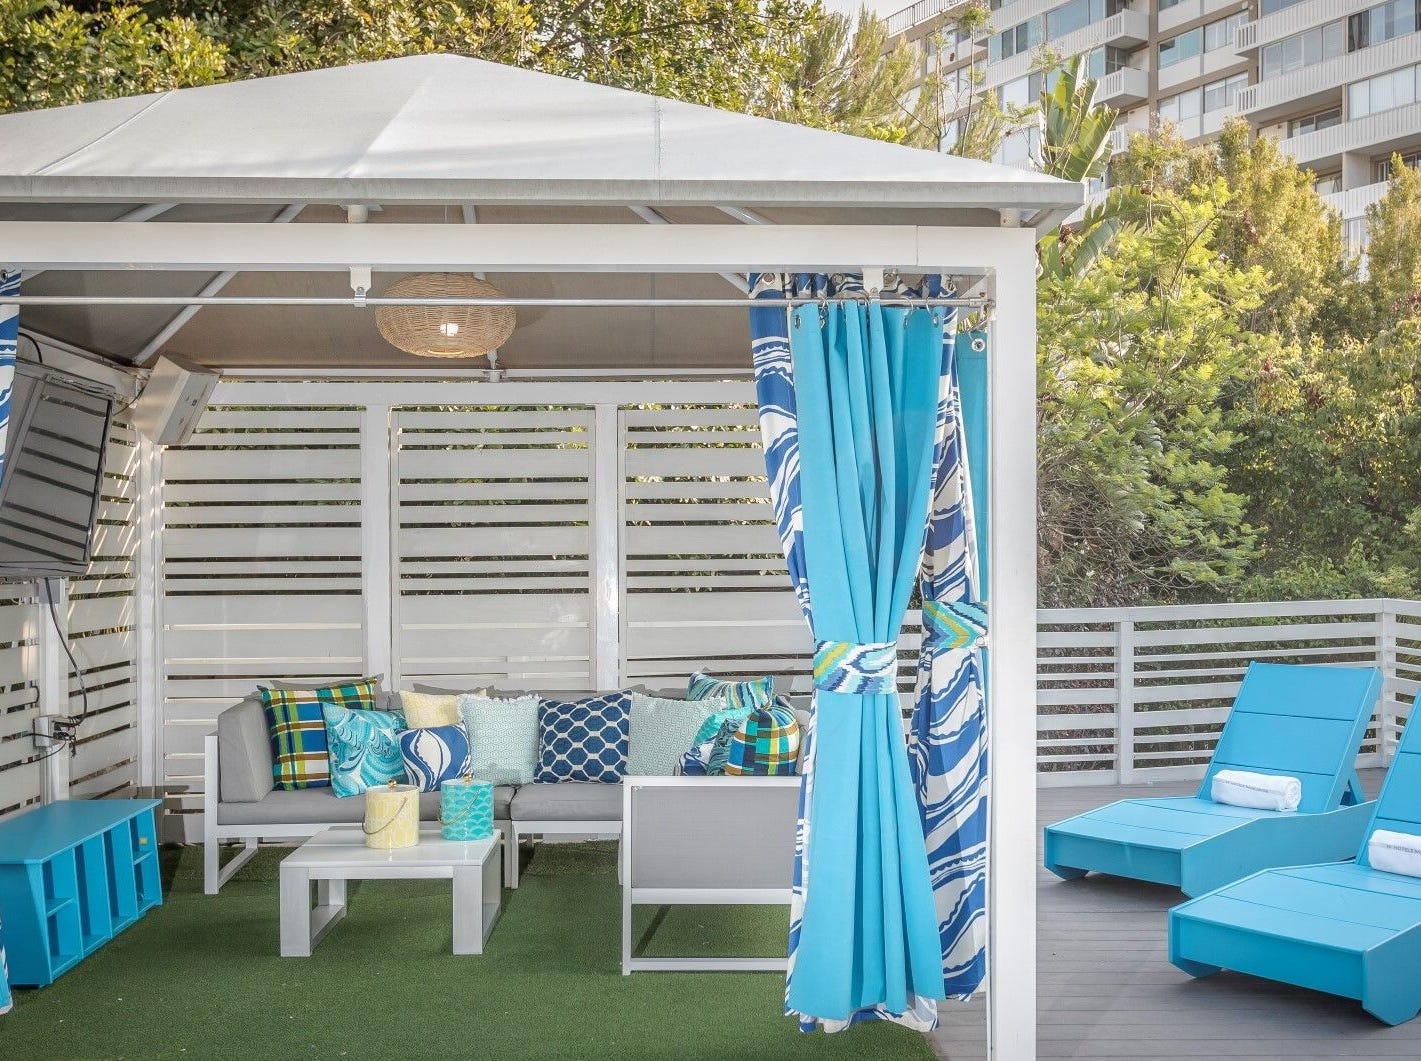 The Trina Turk-designed pool cabanas at the W Los Angeles West Beverly Hills scream tropical vacation. The hotel's cabanas range from $400-$800 daily.